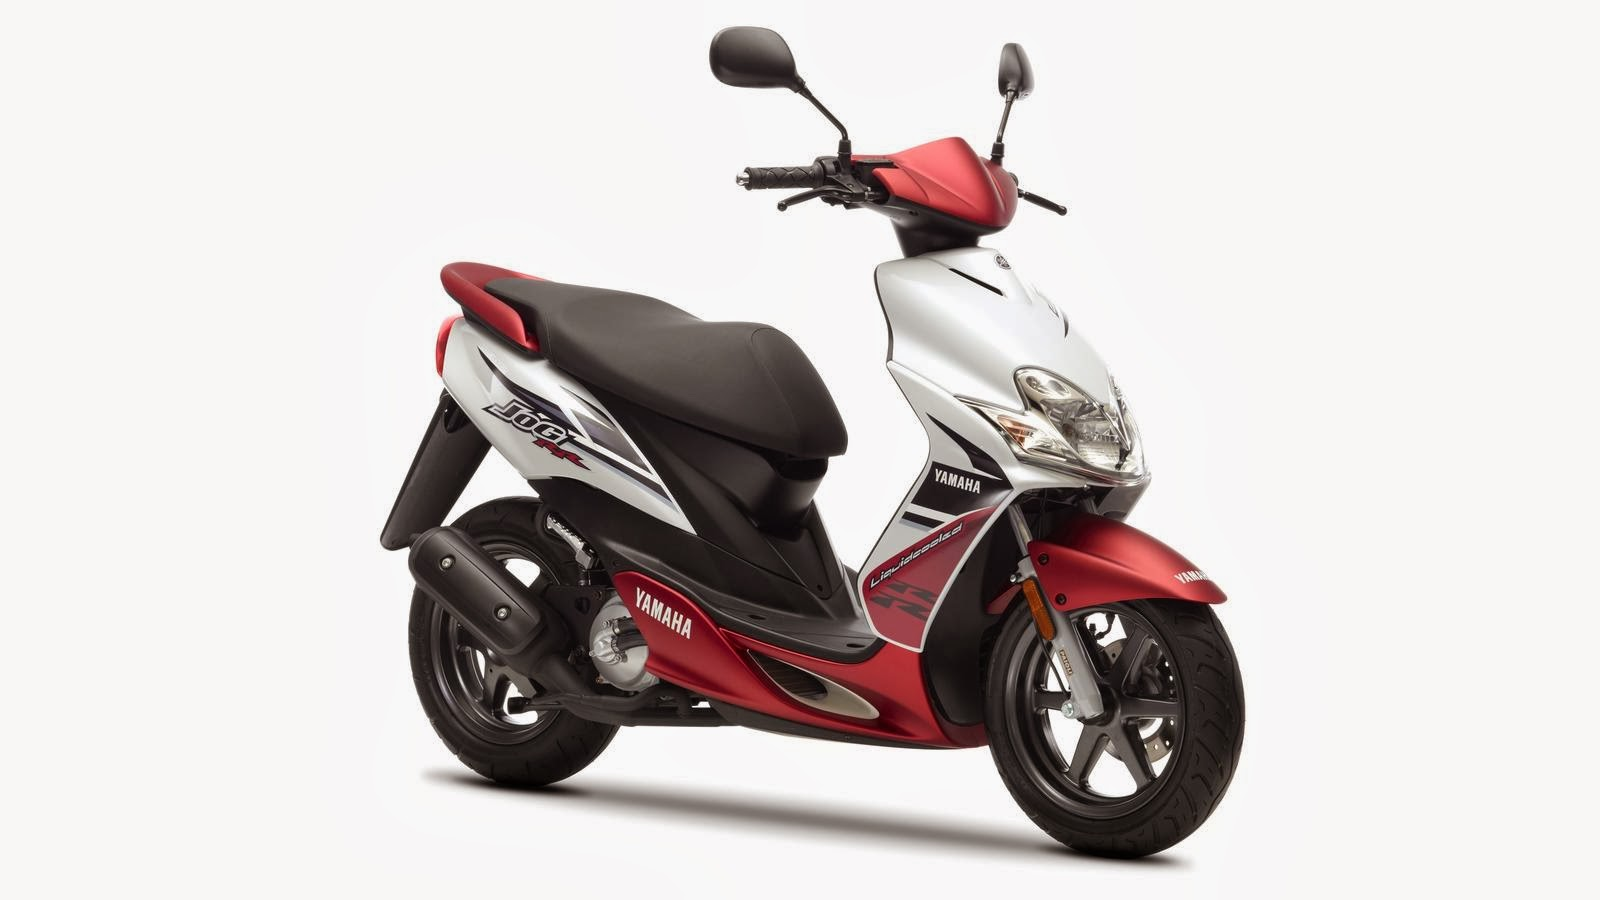 Yamaha Jog R Scooters HD Images